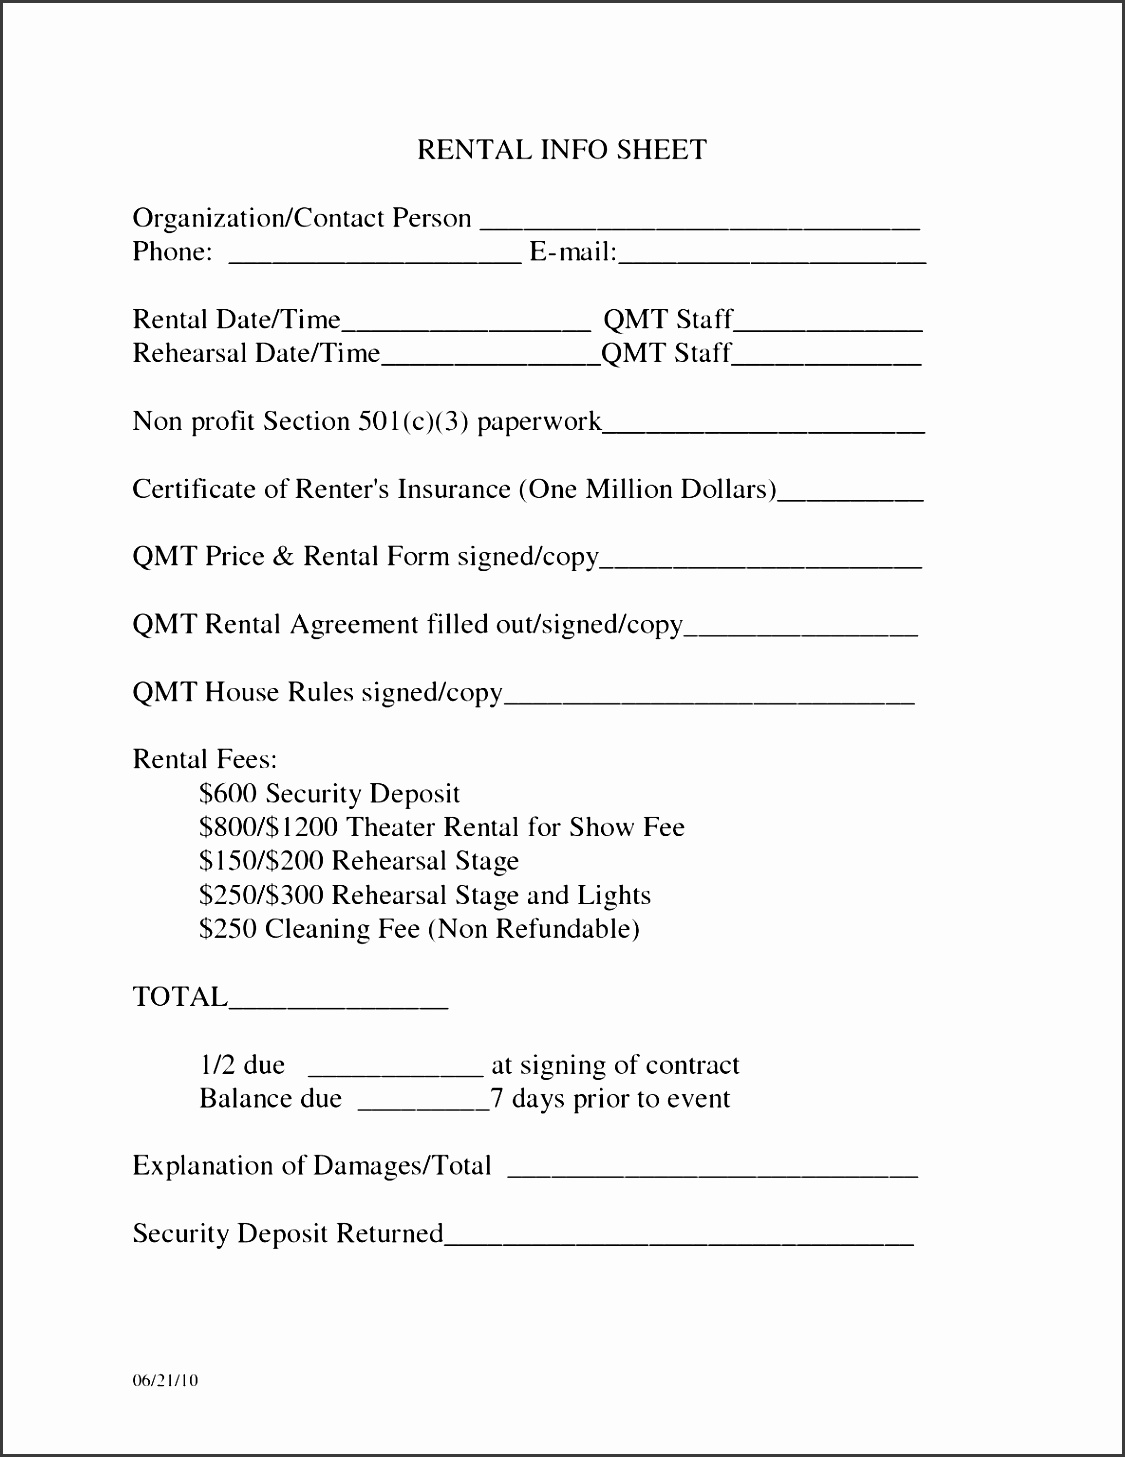 tenant contact information form byyyo inspirational best s of tenant contact information form yfbcj unique best s of renter information form tenant